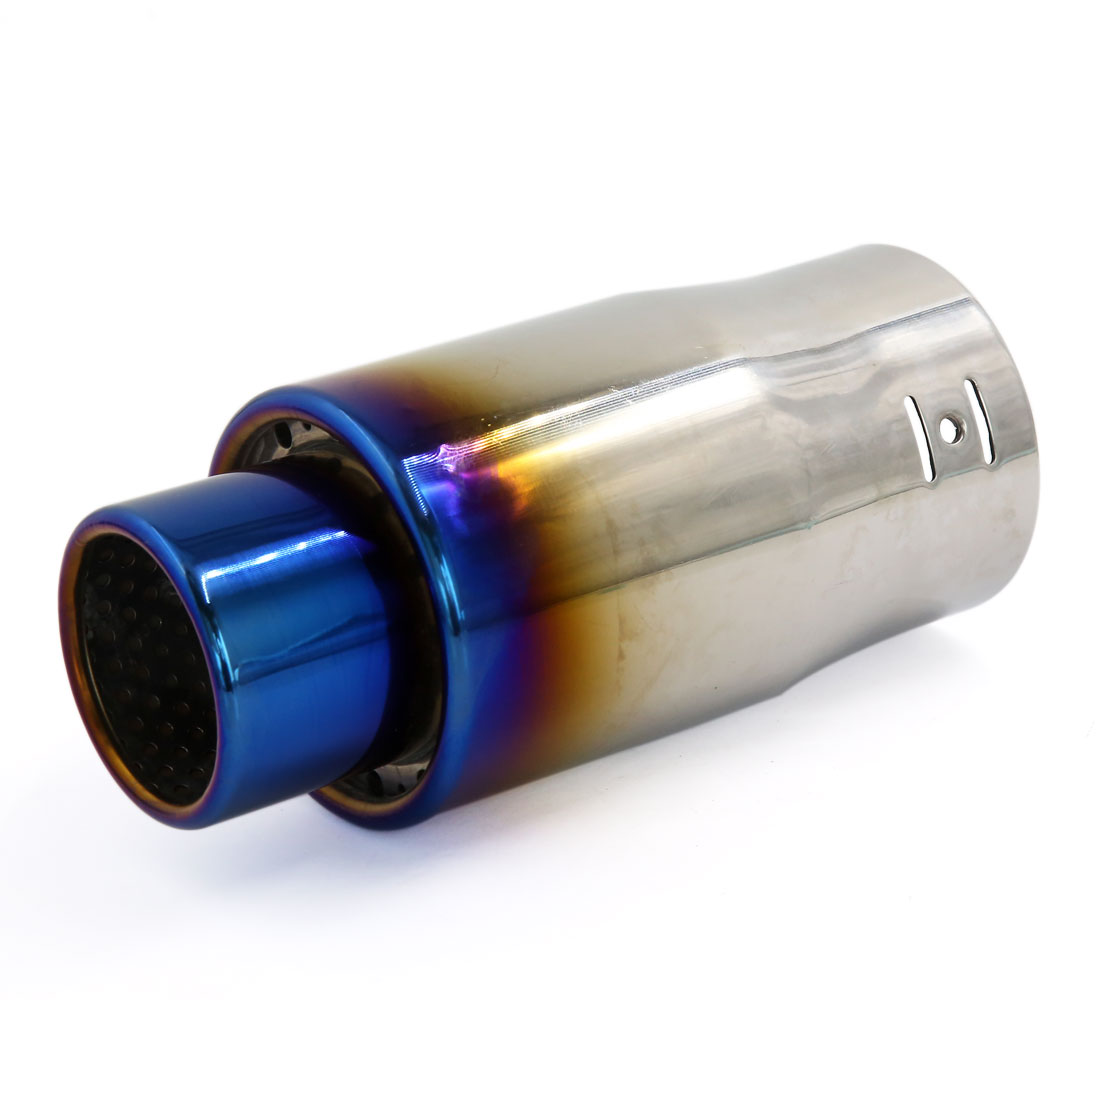 Titanium Blue Stainless Steel Silencer Exhaust Muffler Tip Pipe for Vehicle Car